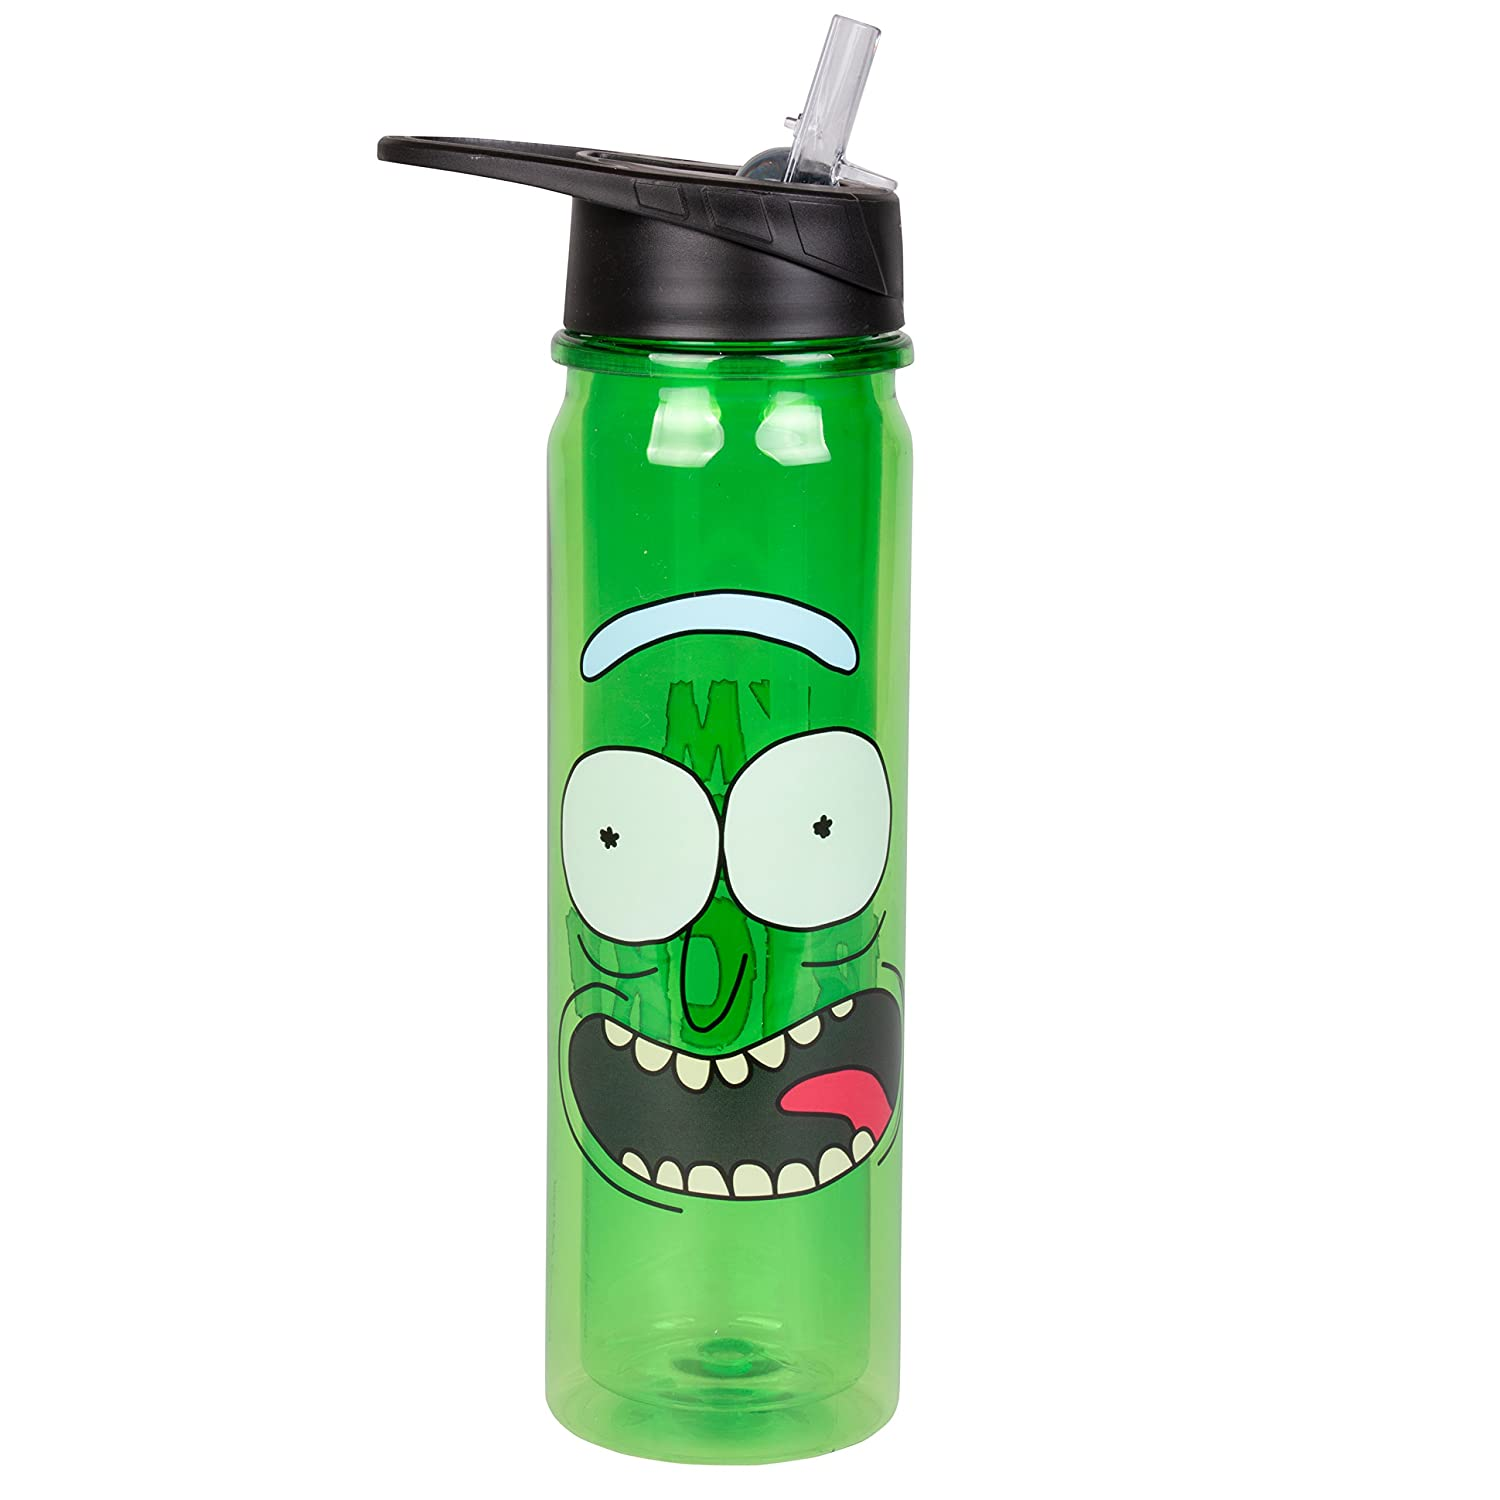 SCS Direct Rick and Morty Plastic Sports Water Bottle with Flip Top Lid I'm Pickle Rick 18 oz